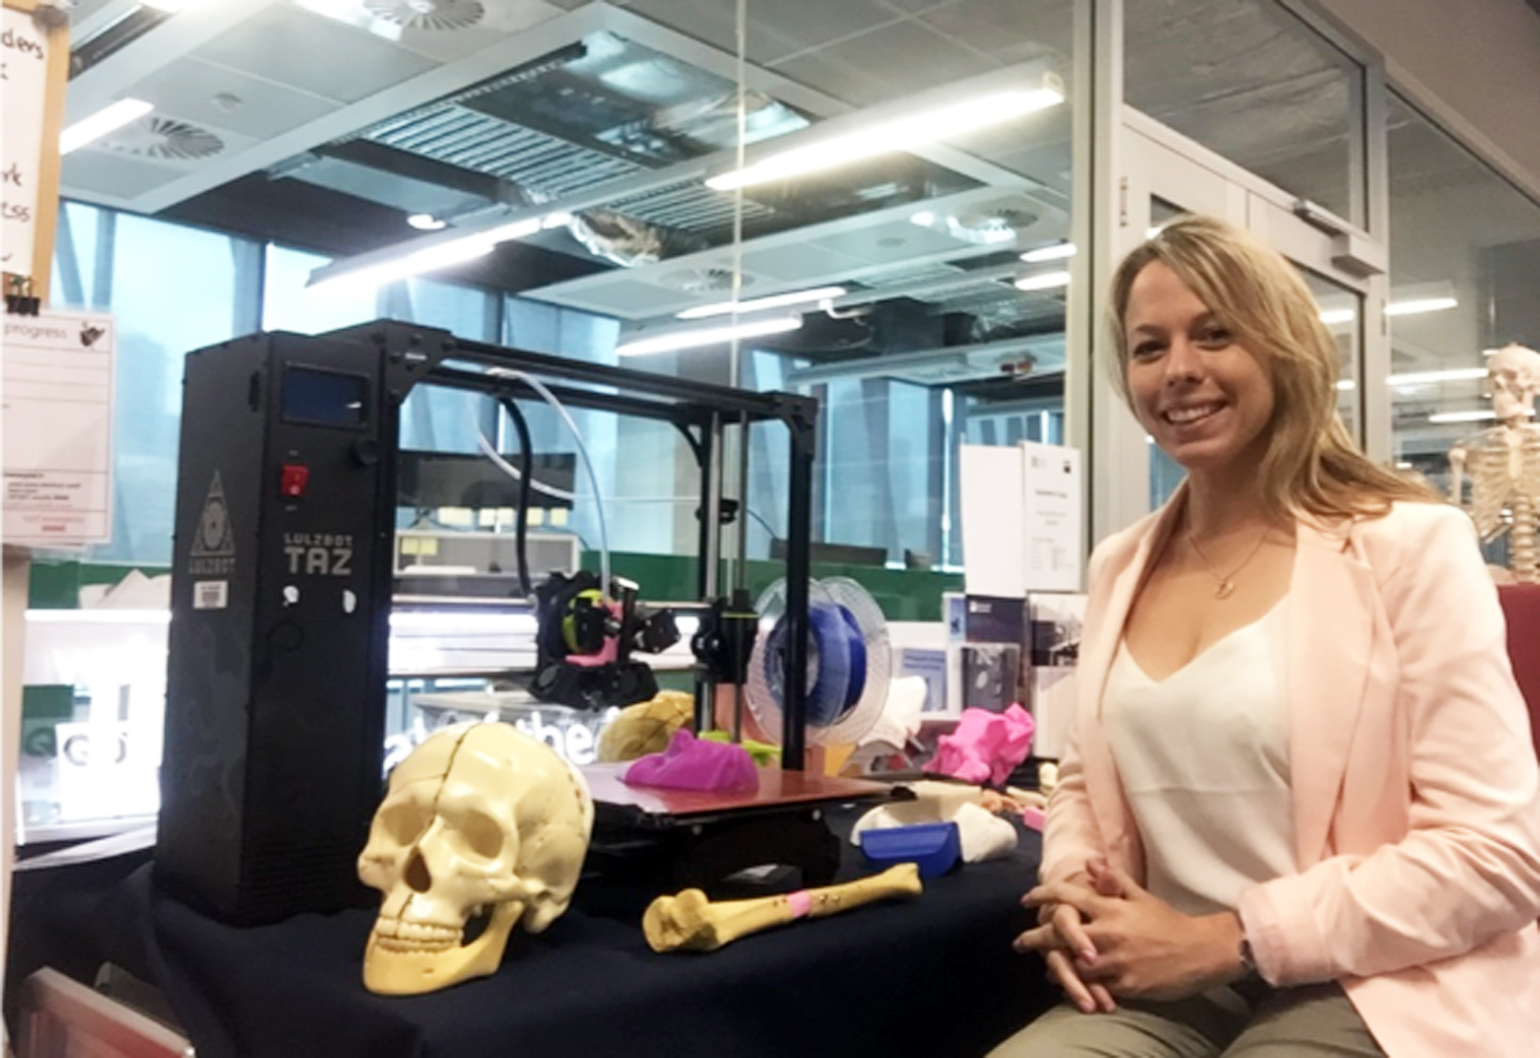 Mathilde Desselle sits at the intersection of biotech and manufacturing: aka biofabrication